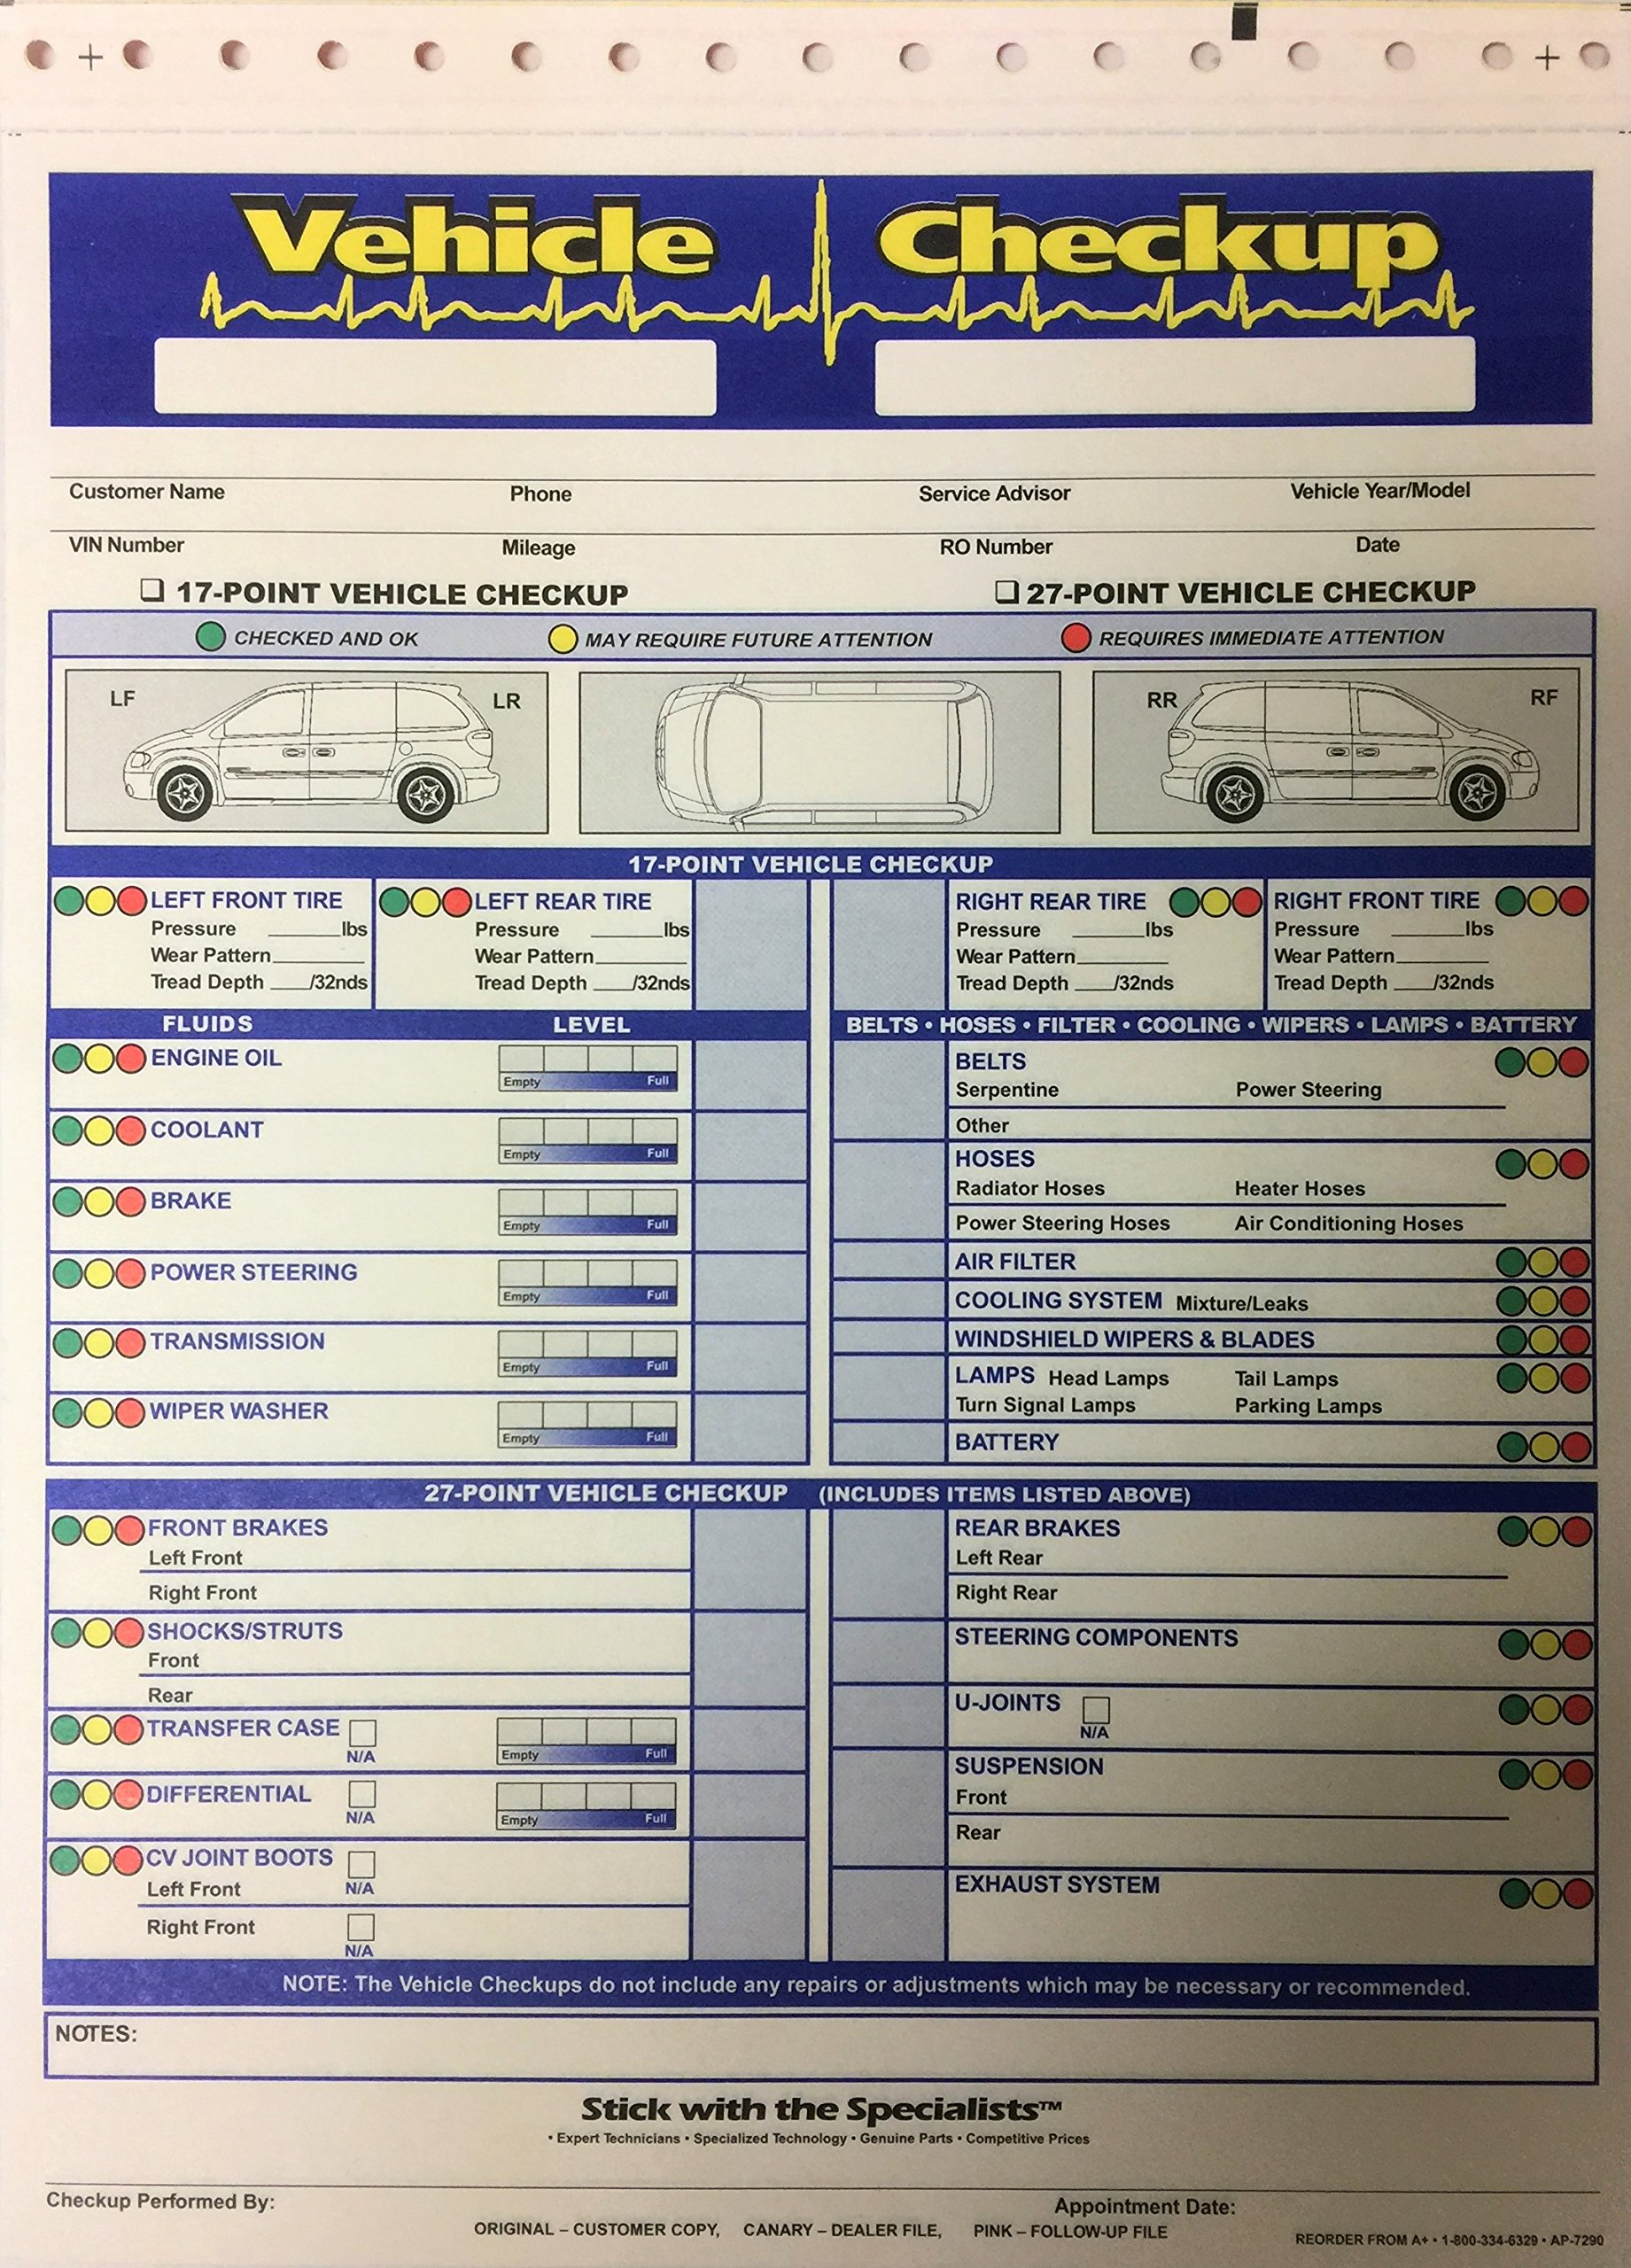 Vehicle Check Up 3 Part Inspection Form 250 Quantity By A Plus (W2)